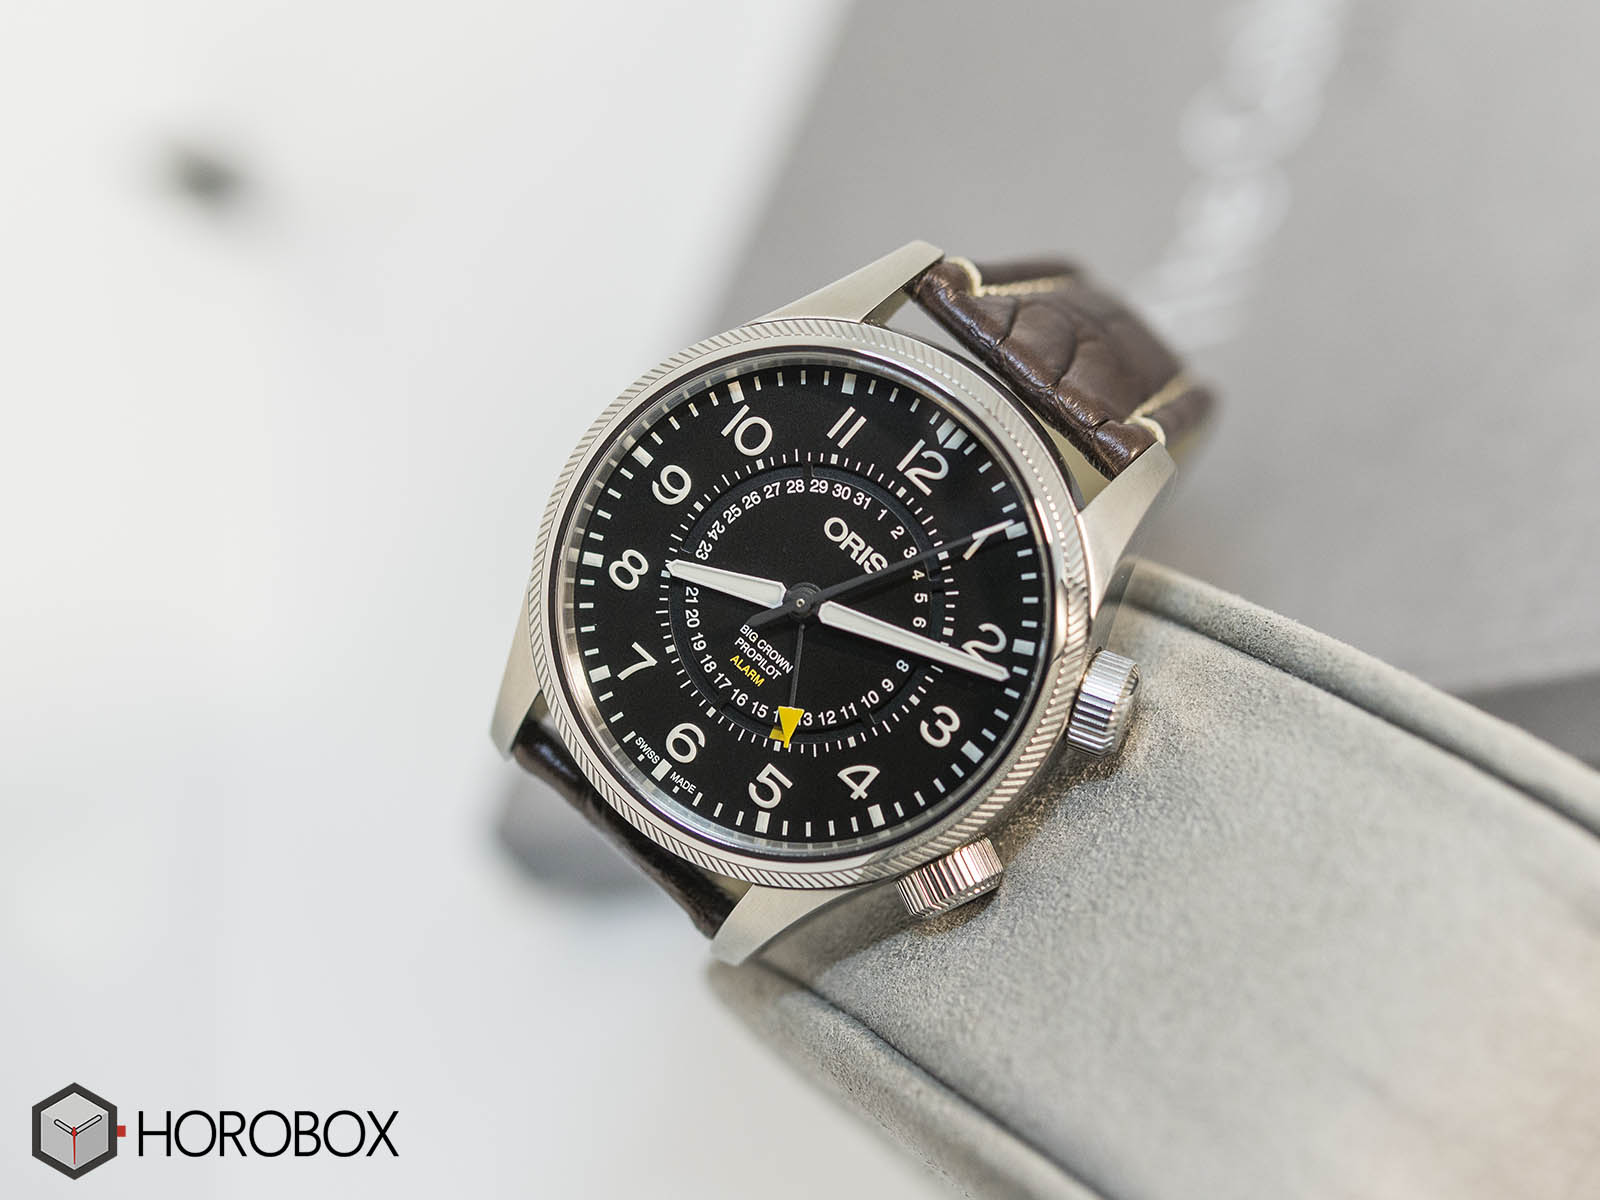 oris-big-crown-propilot-alarm-limited-edition-01-910-7745-4084-2.jpg